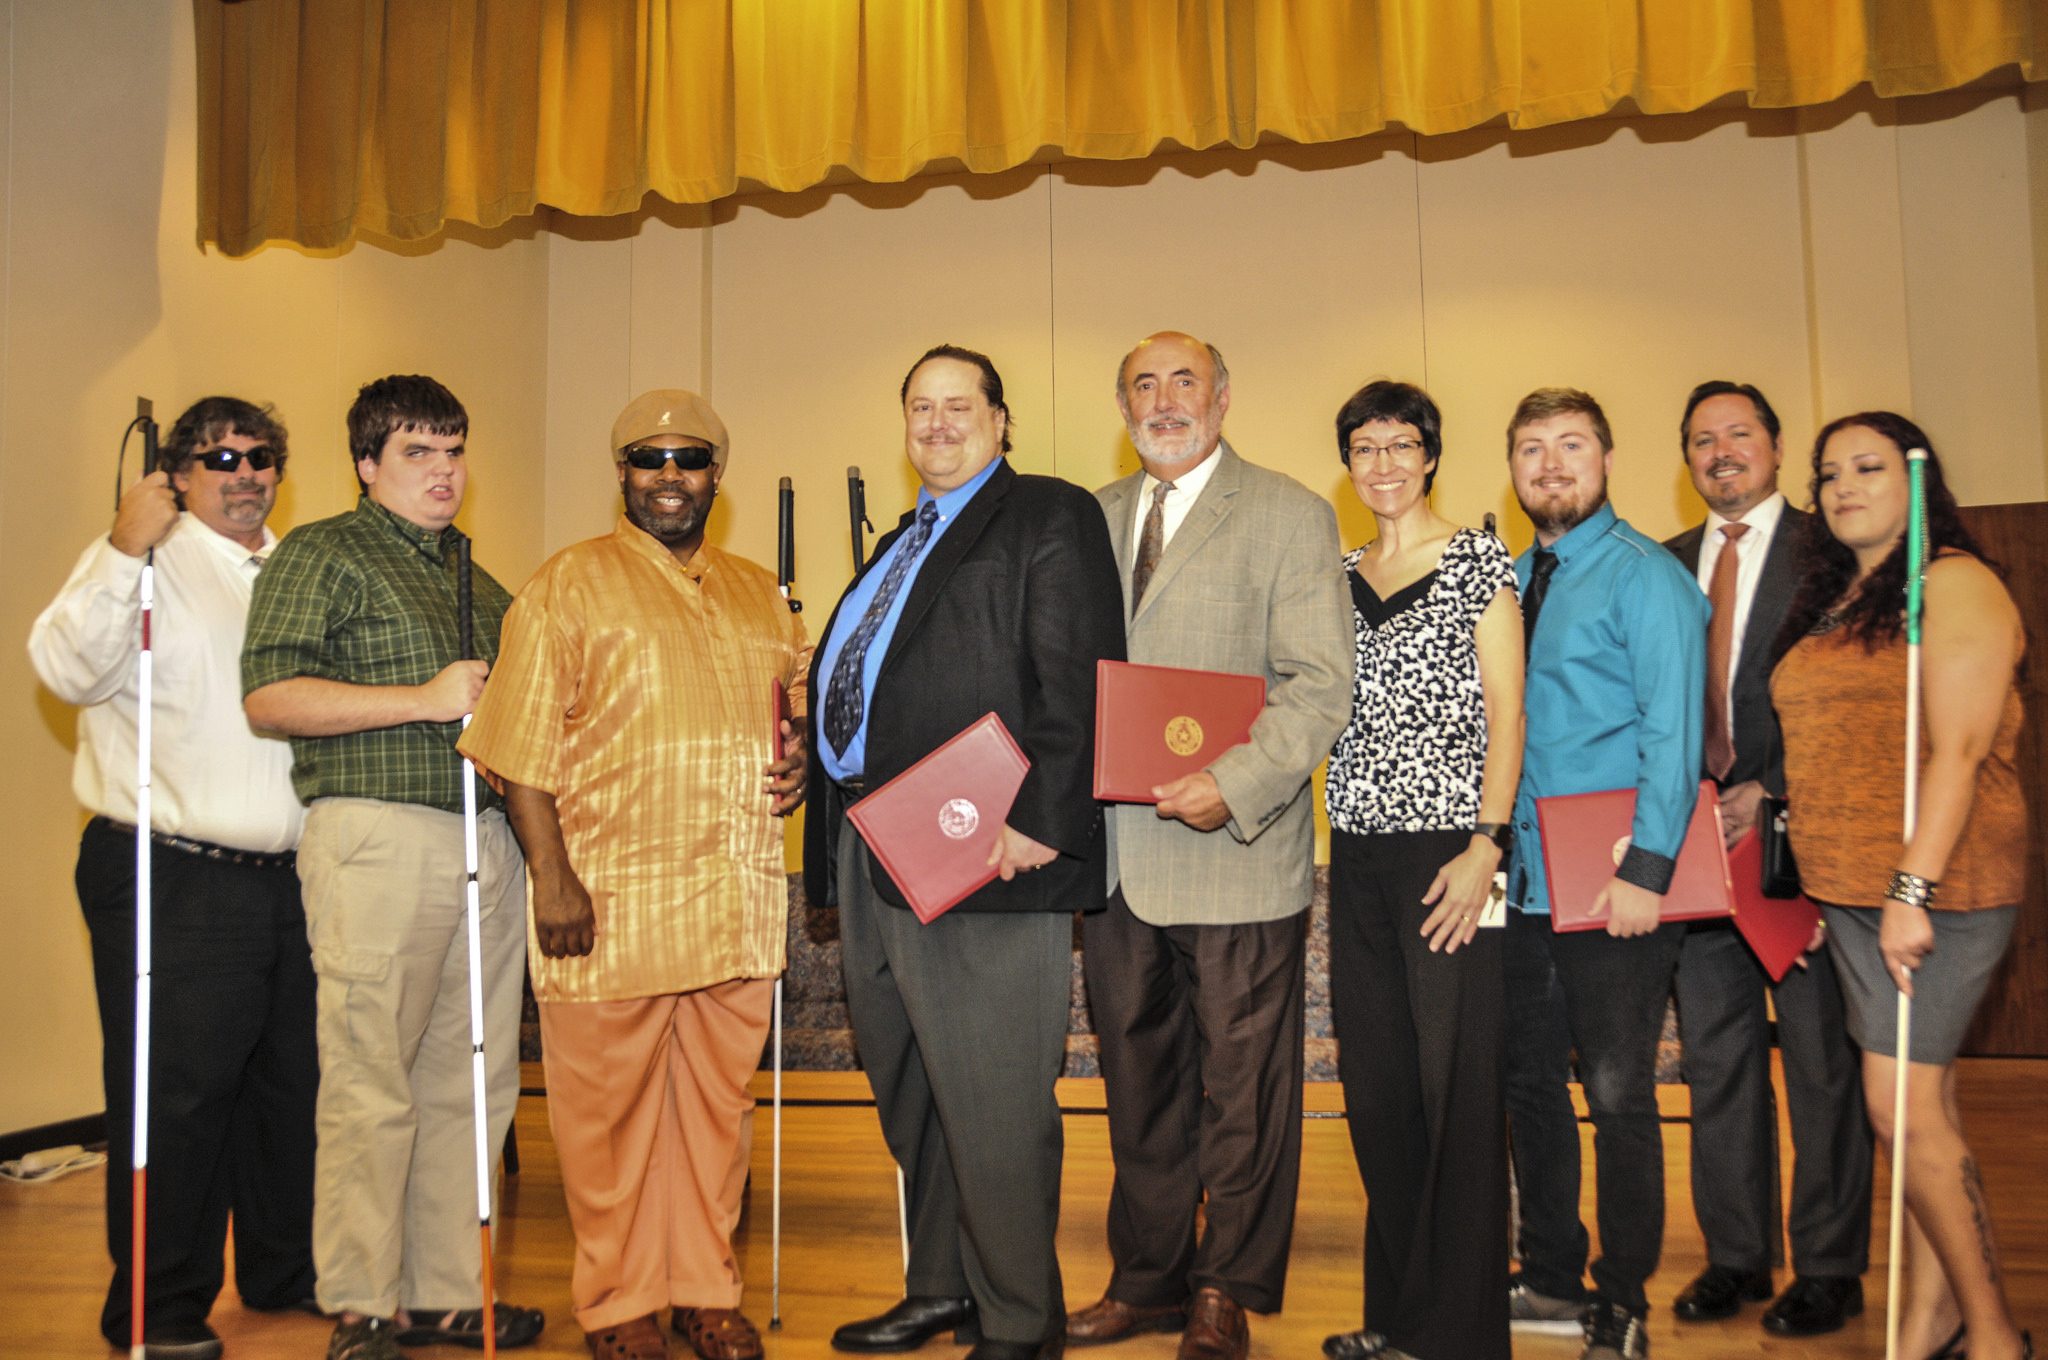 Lary Temple participating in a graduation ceremony at the Criss Cole Rehabilitation Center, an innovative, residential vocational rehabilitation training facility serving adults who are legally blind.